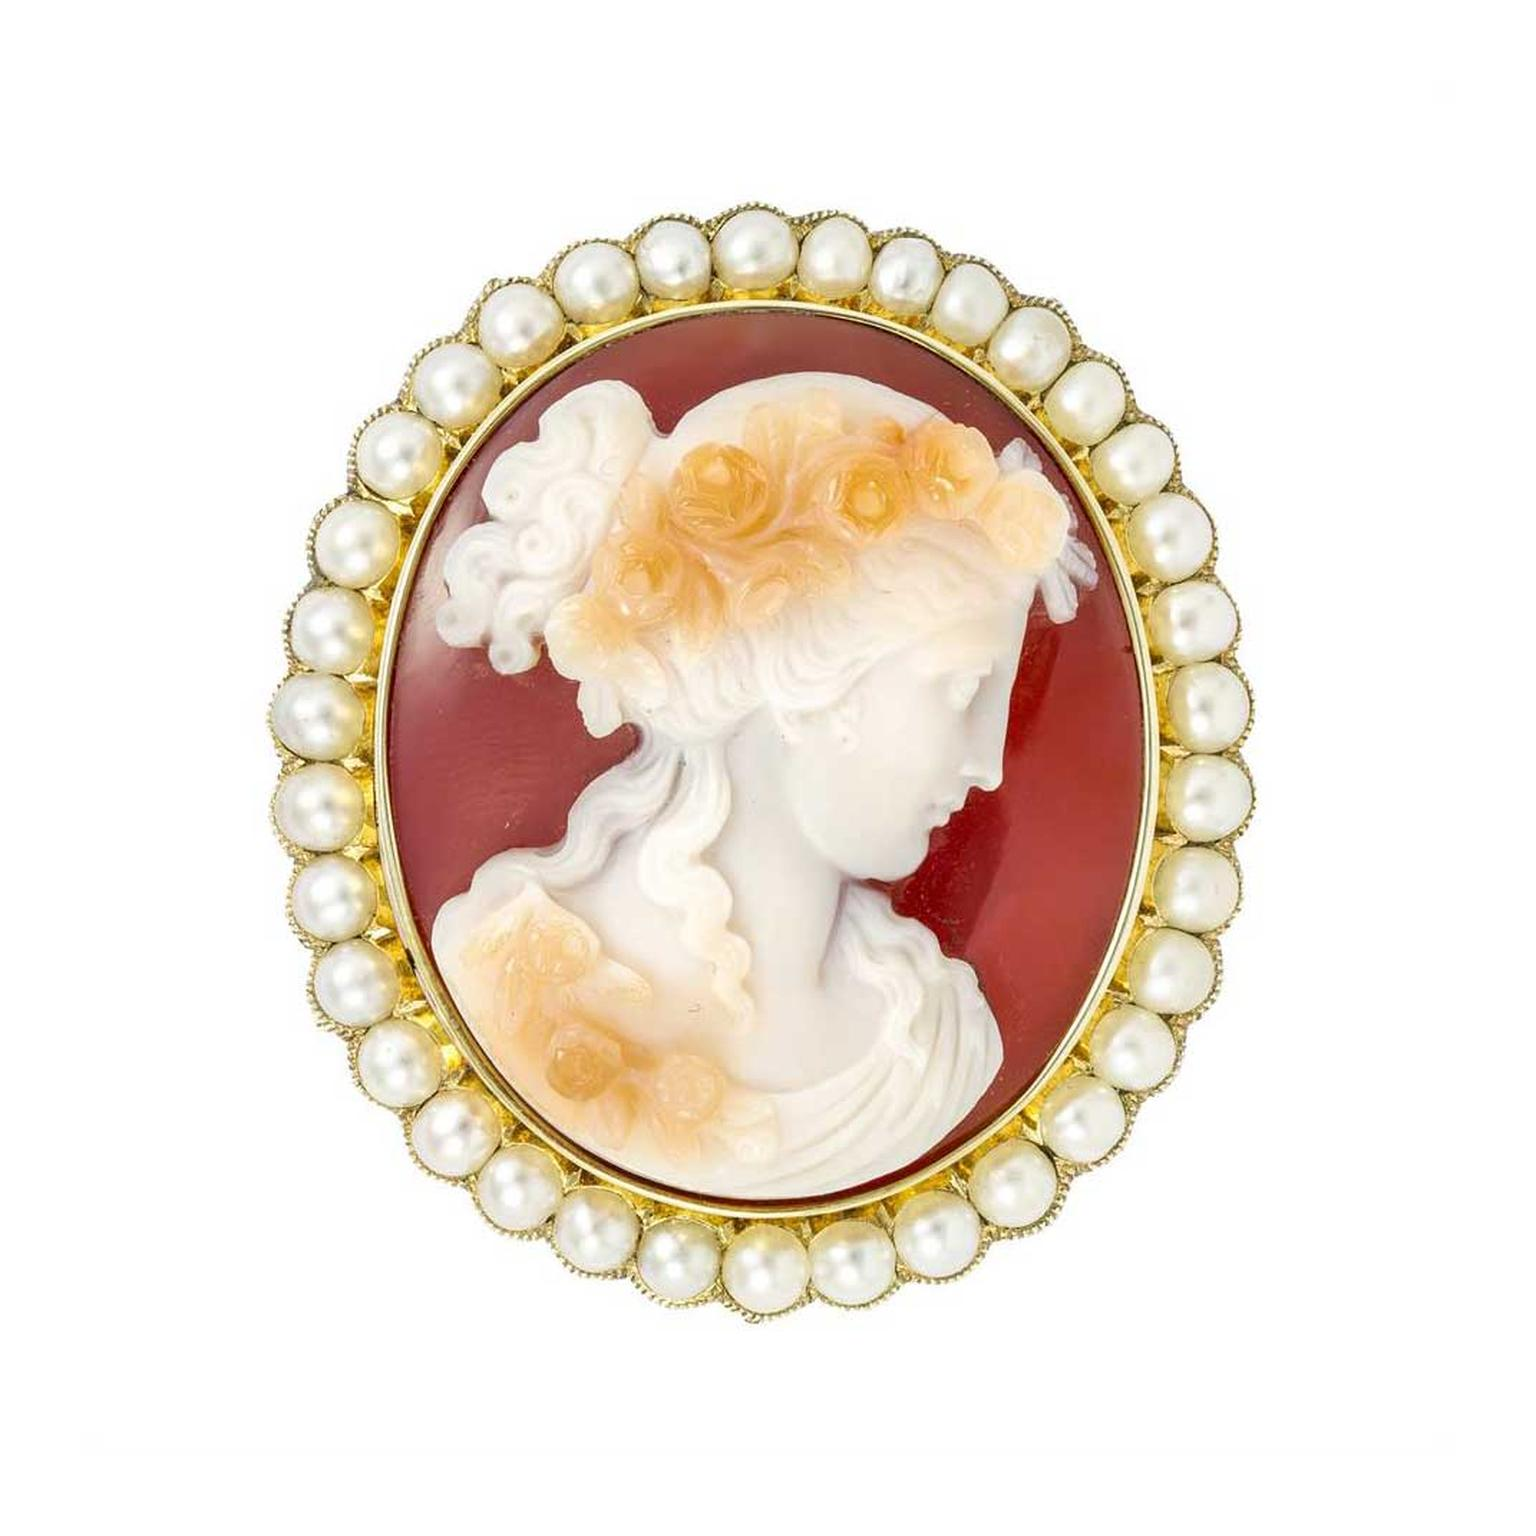 Bentley & Skinner Victorian cameo brooch